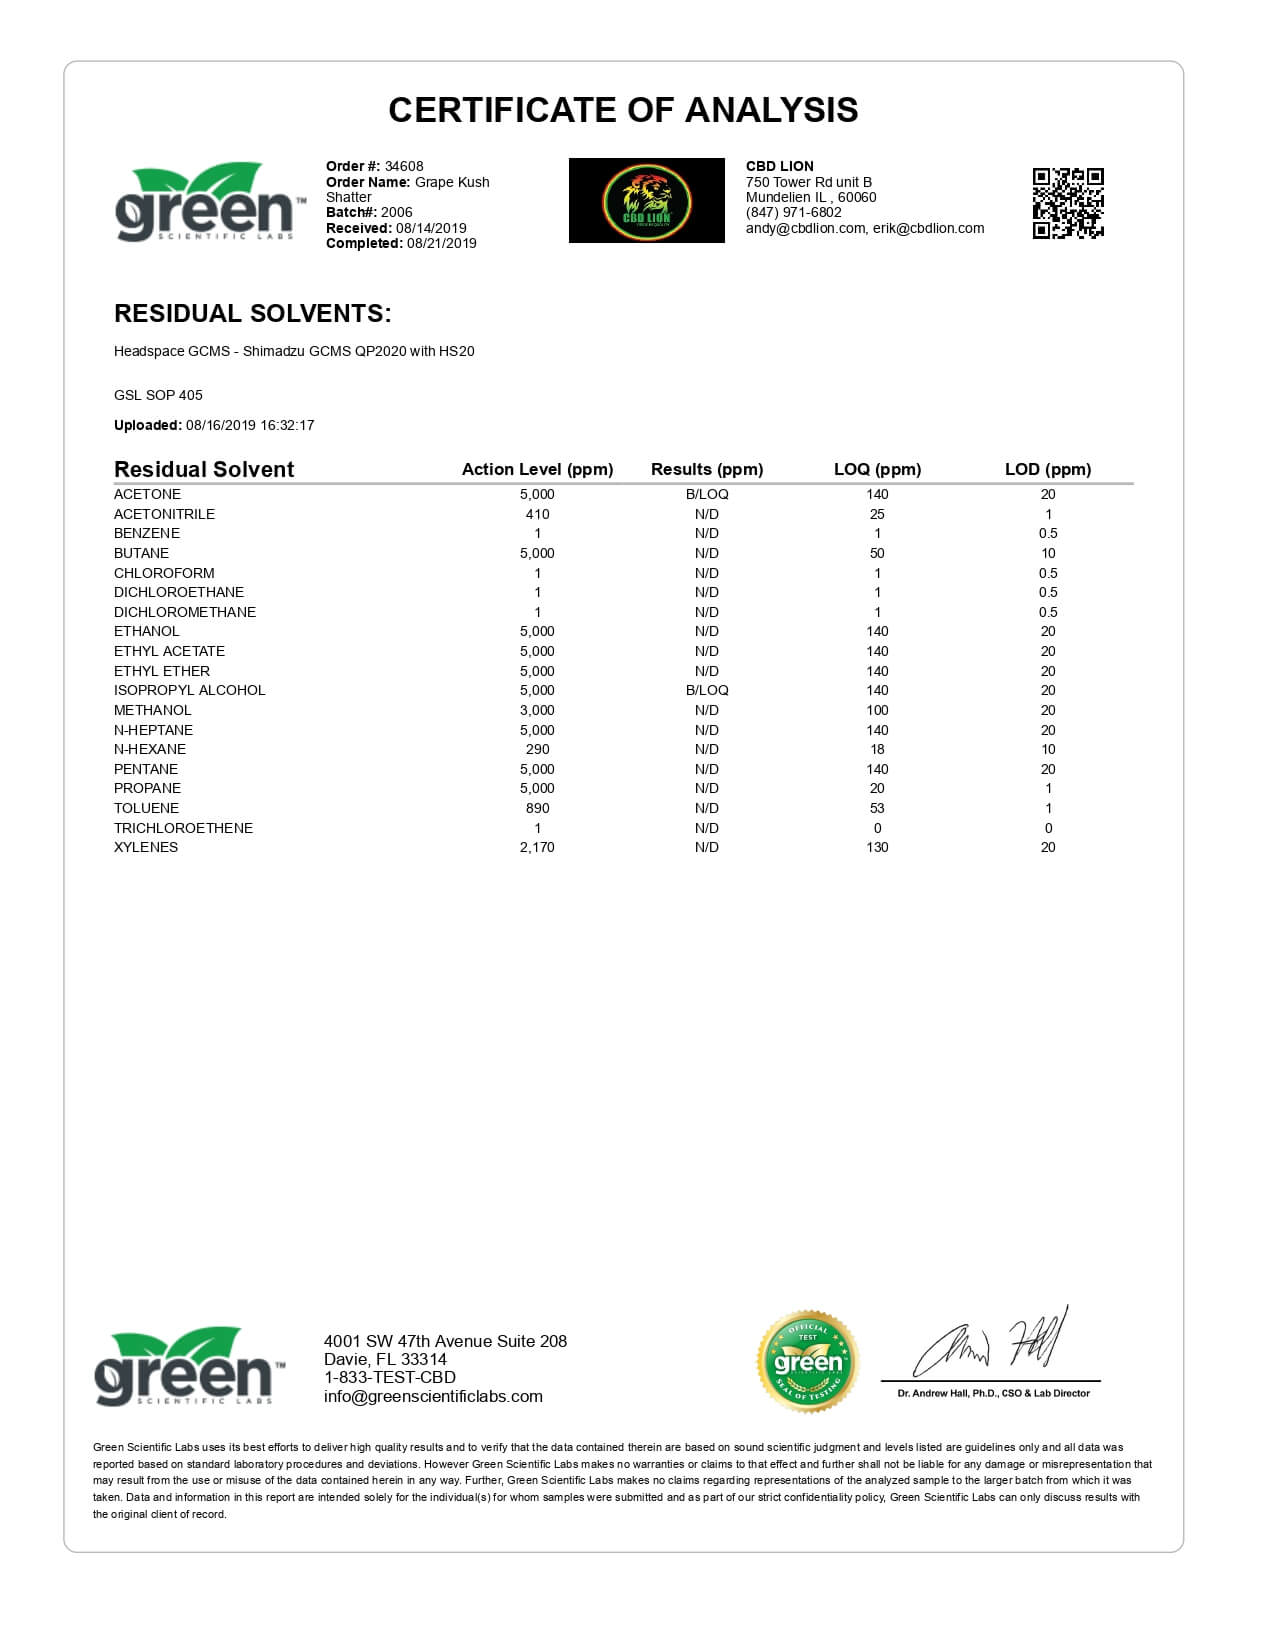 CBD Lion CBD Concentrate Grape Kush Shatter 0.5g Lab Report